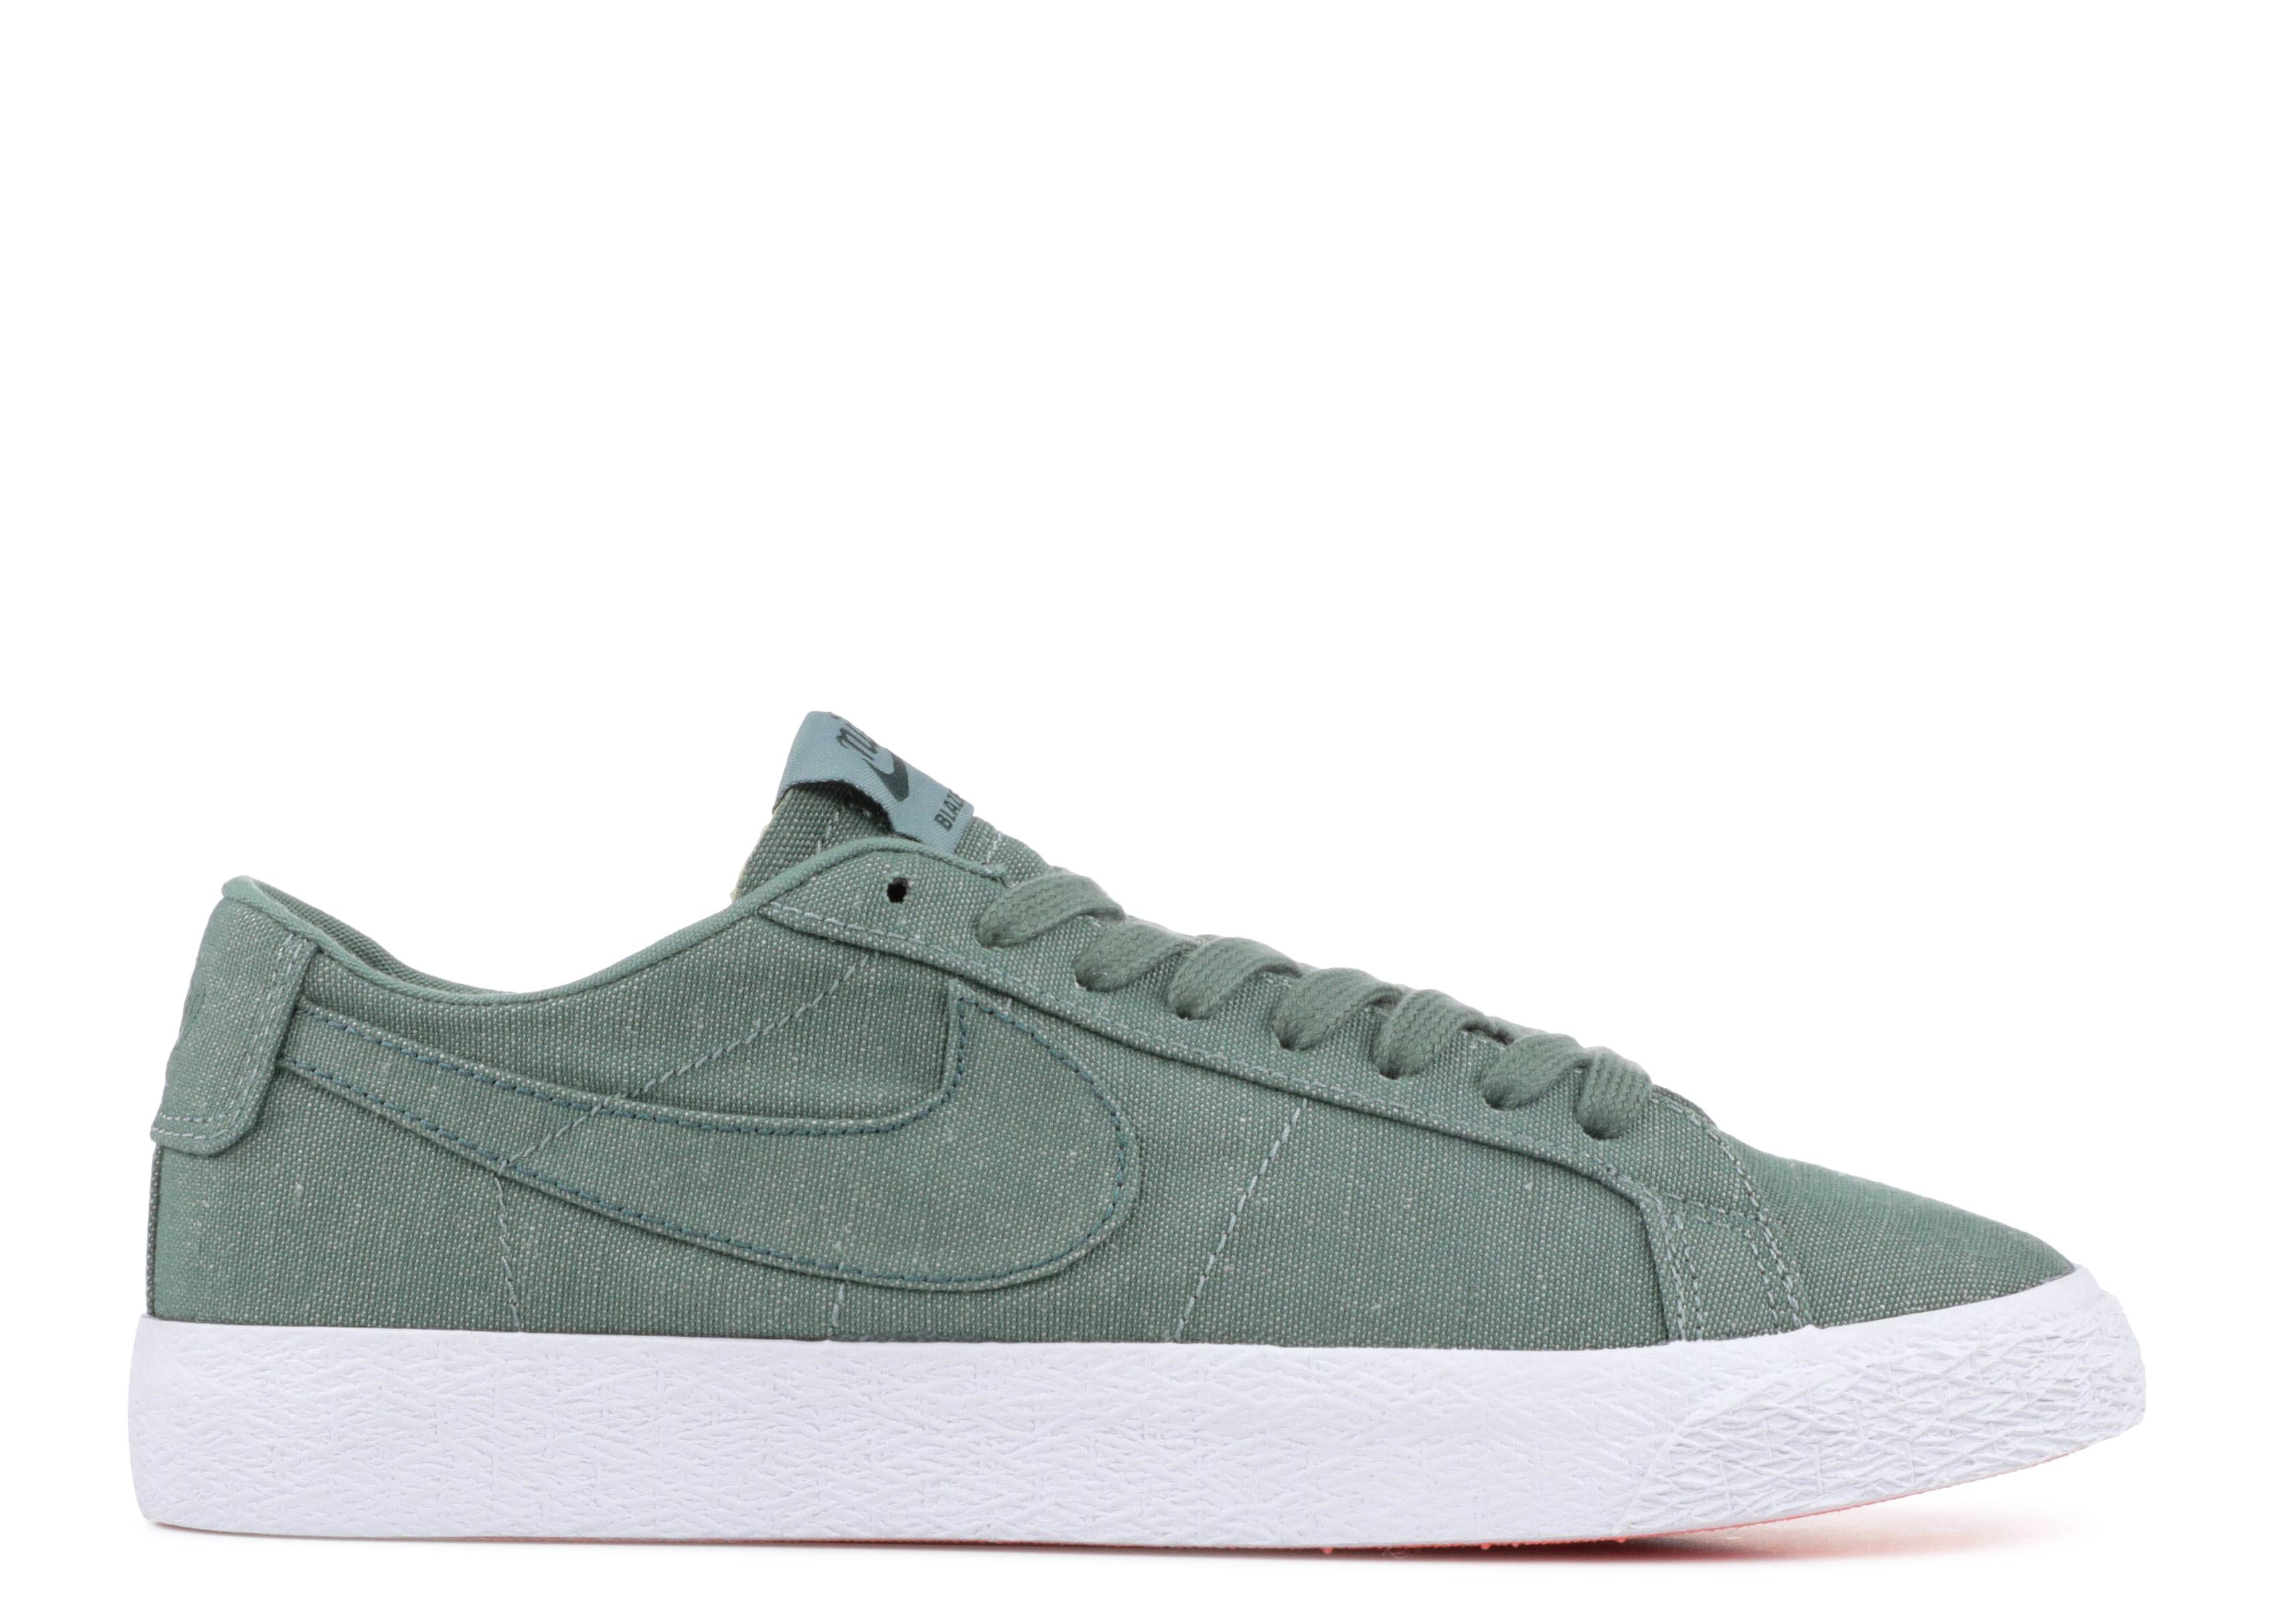 sb zoom blazer low cnvs decon